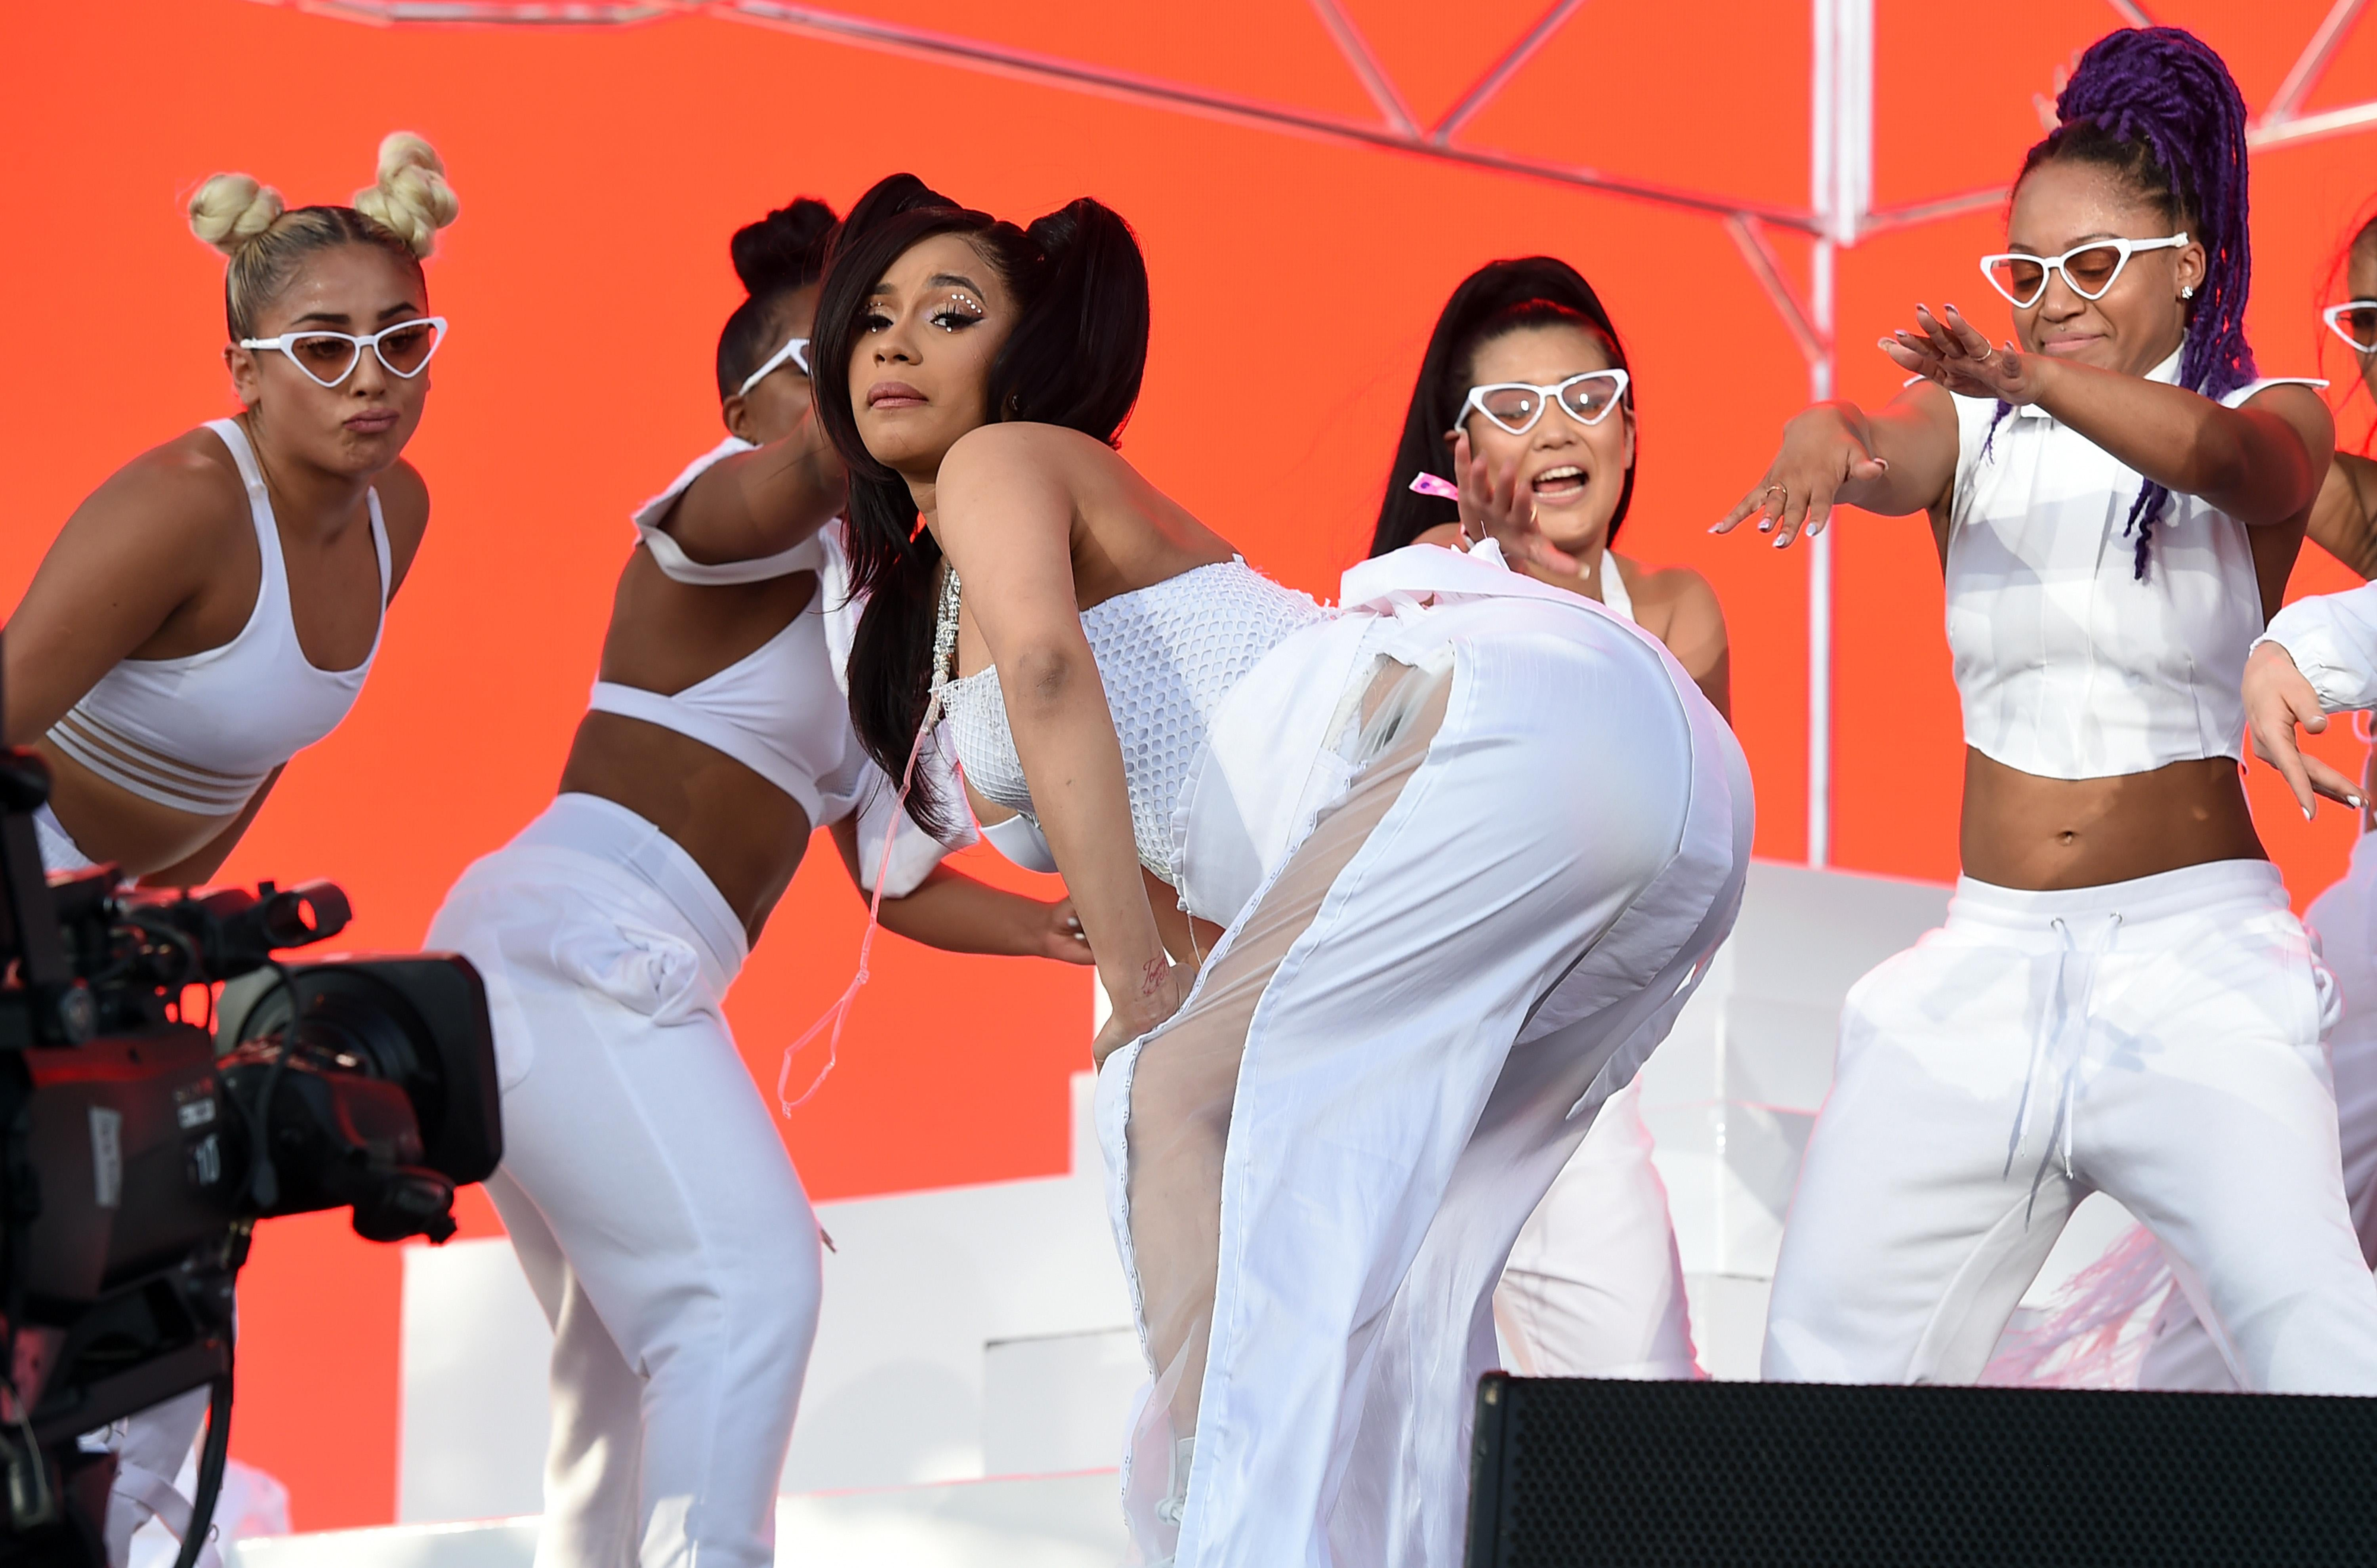 Watch Pregnant Cardi B Twerk And Live Her Best Life At Coachella